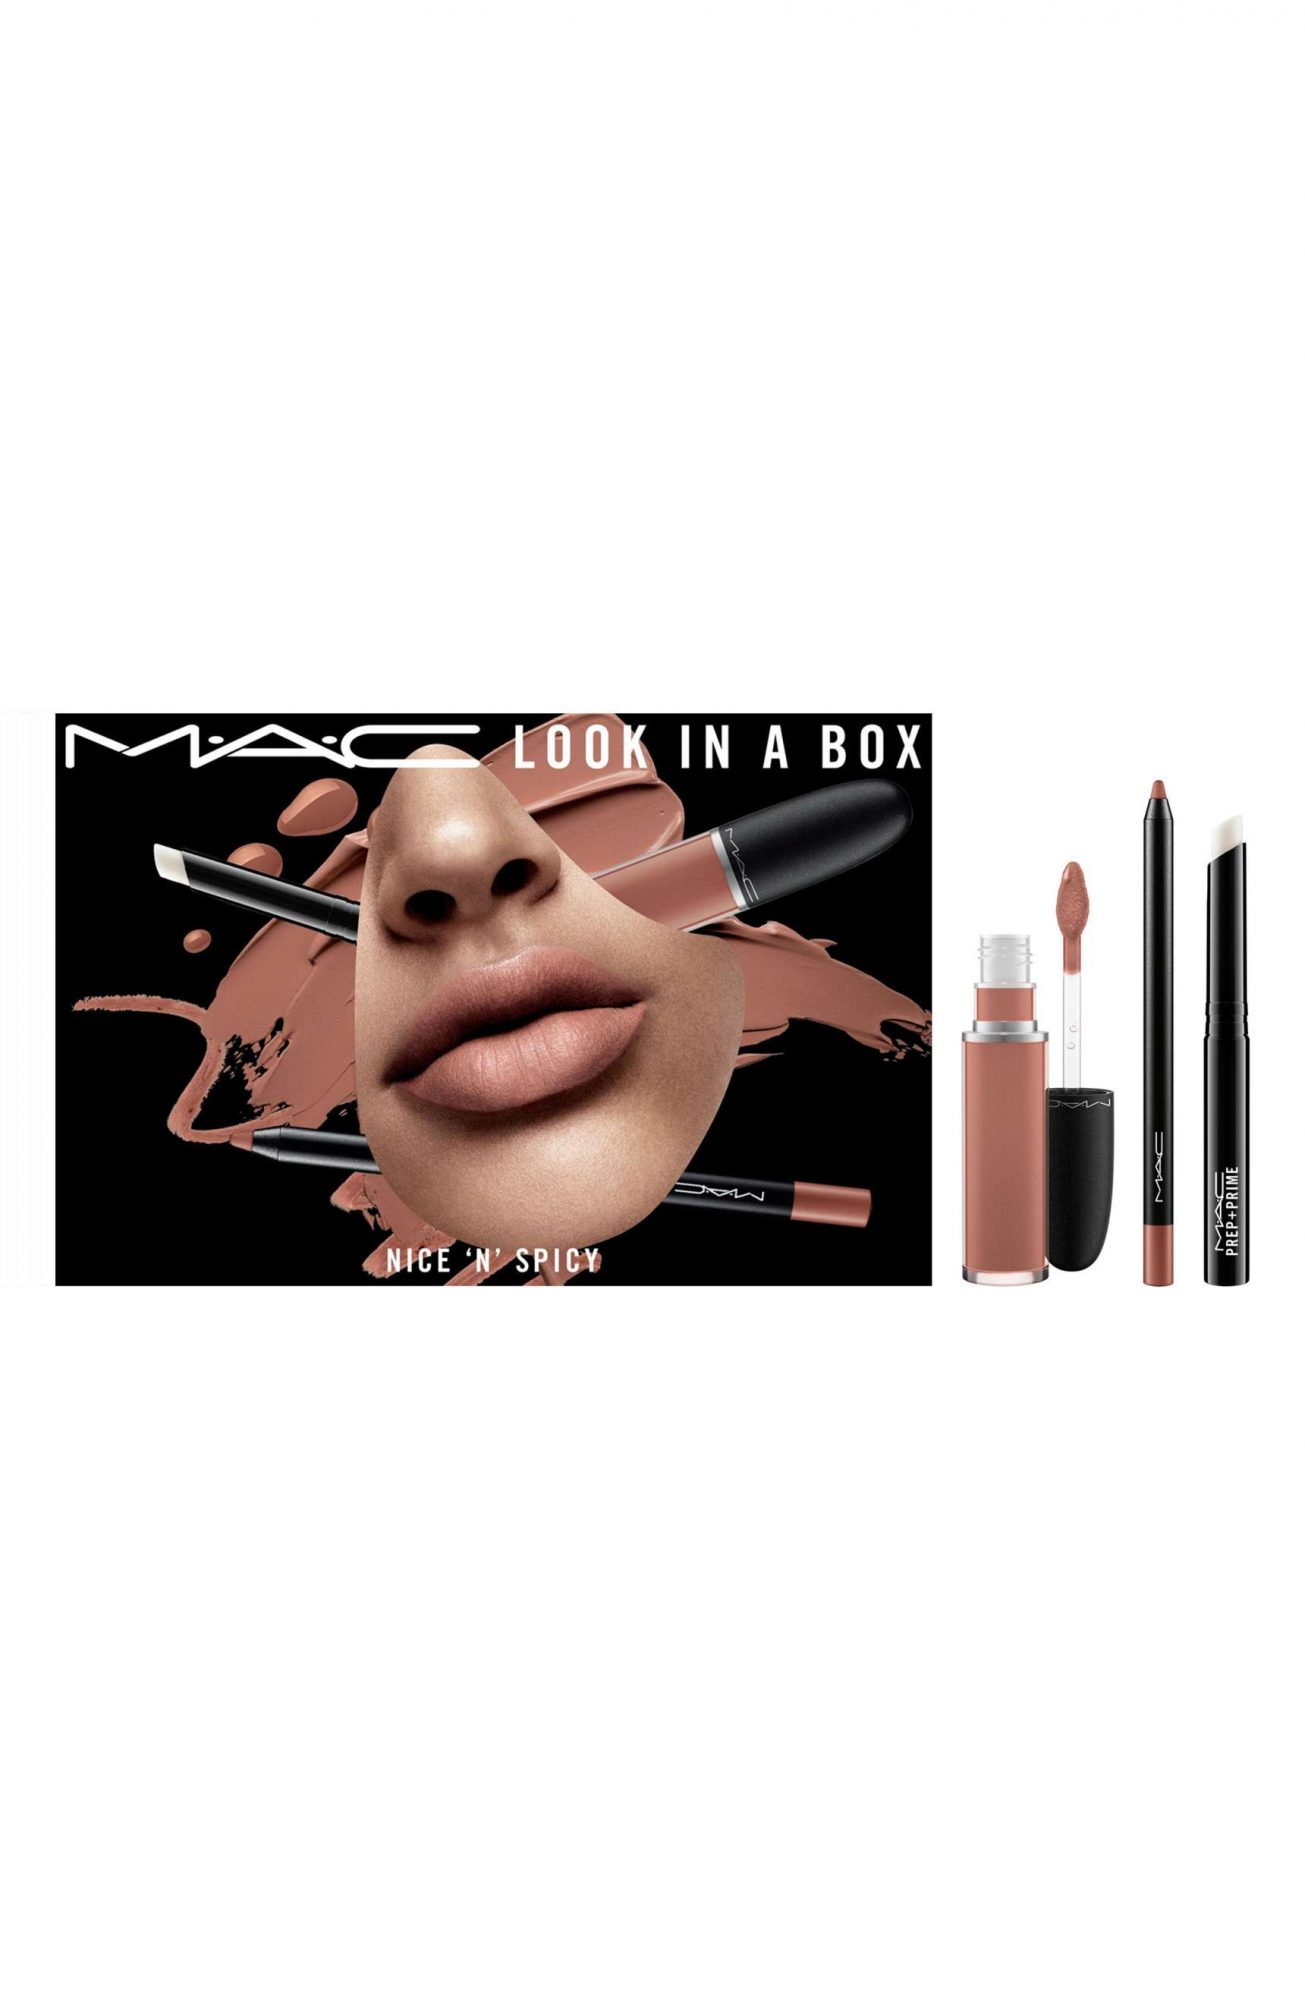 Look in a Box Nice 'n Spicy Lip Kit